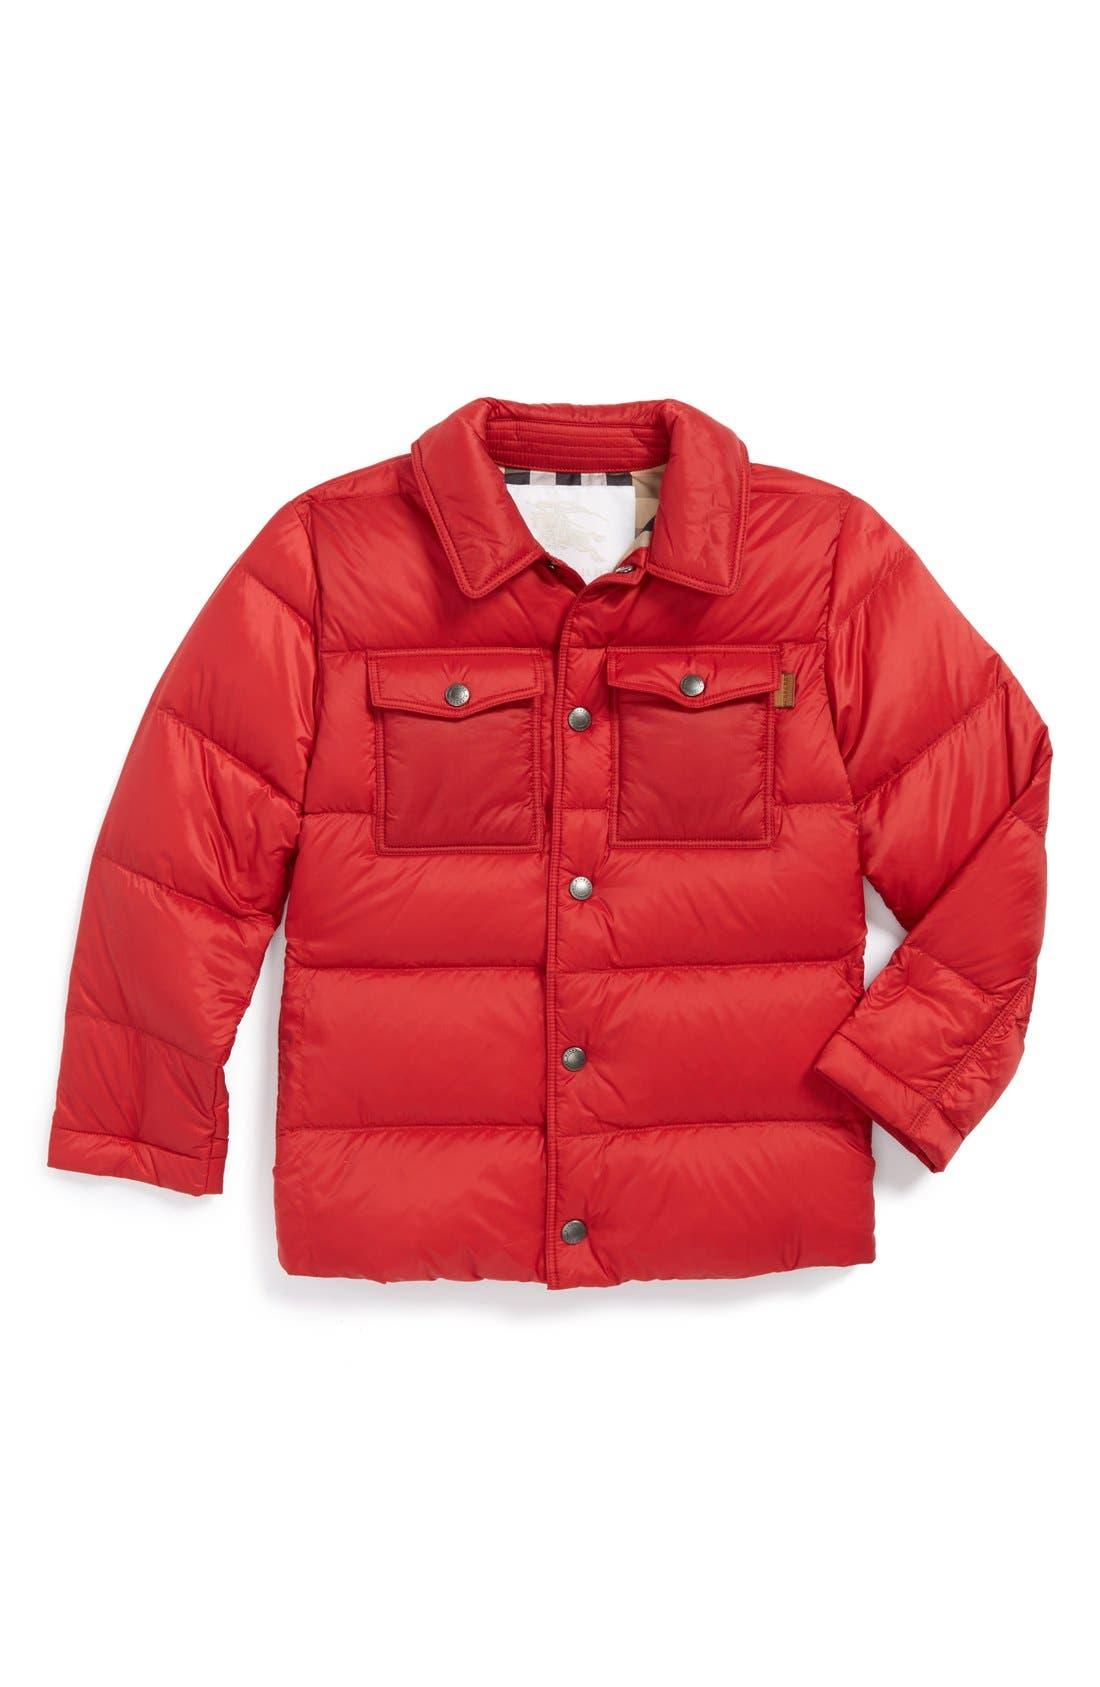 Main Image - Burberry 'Mini Justin' Quilted Down Puffer Jacket (Toddler Boys)